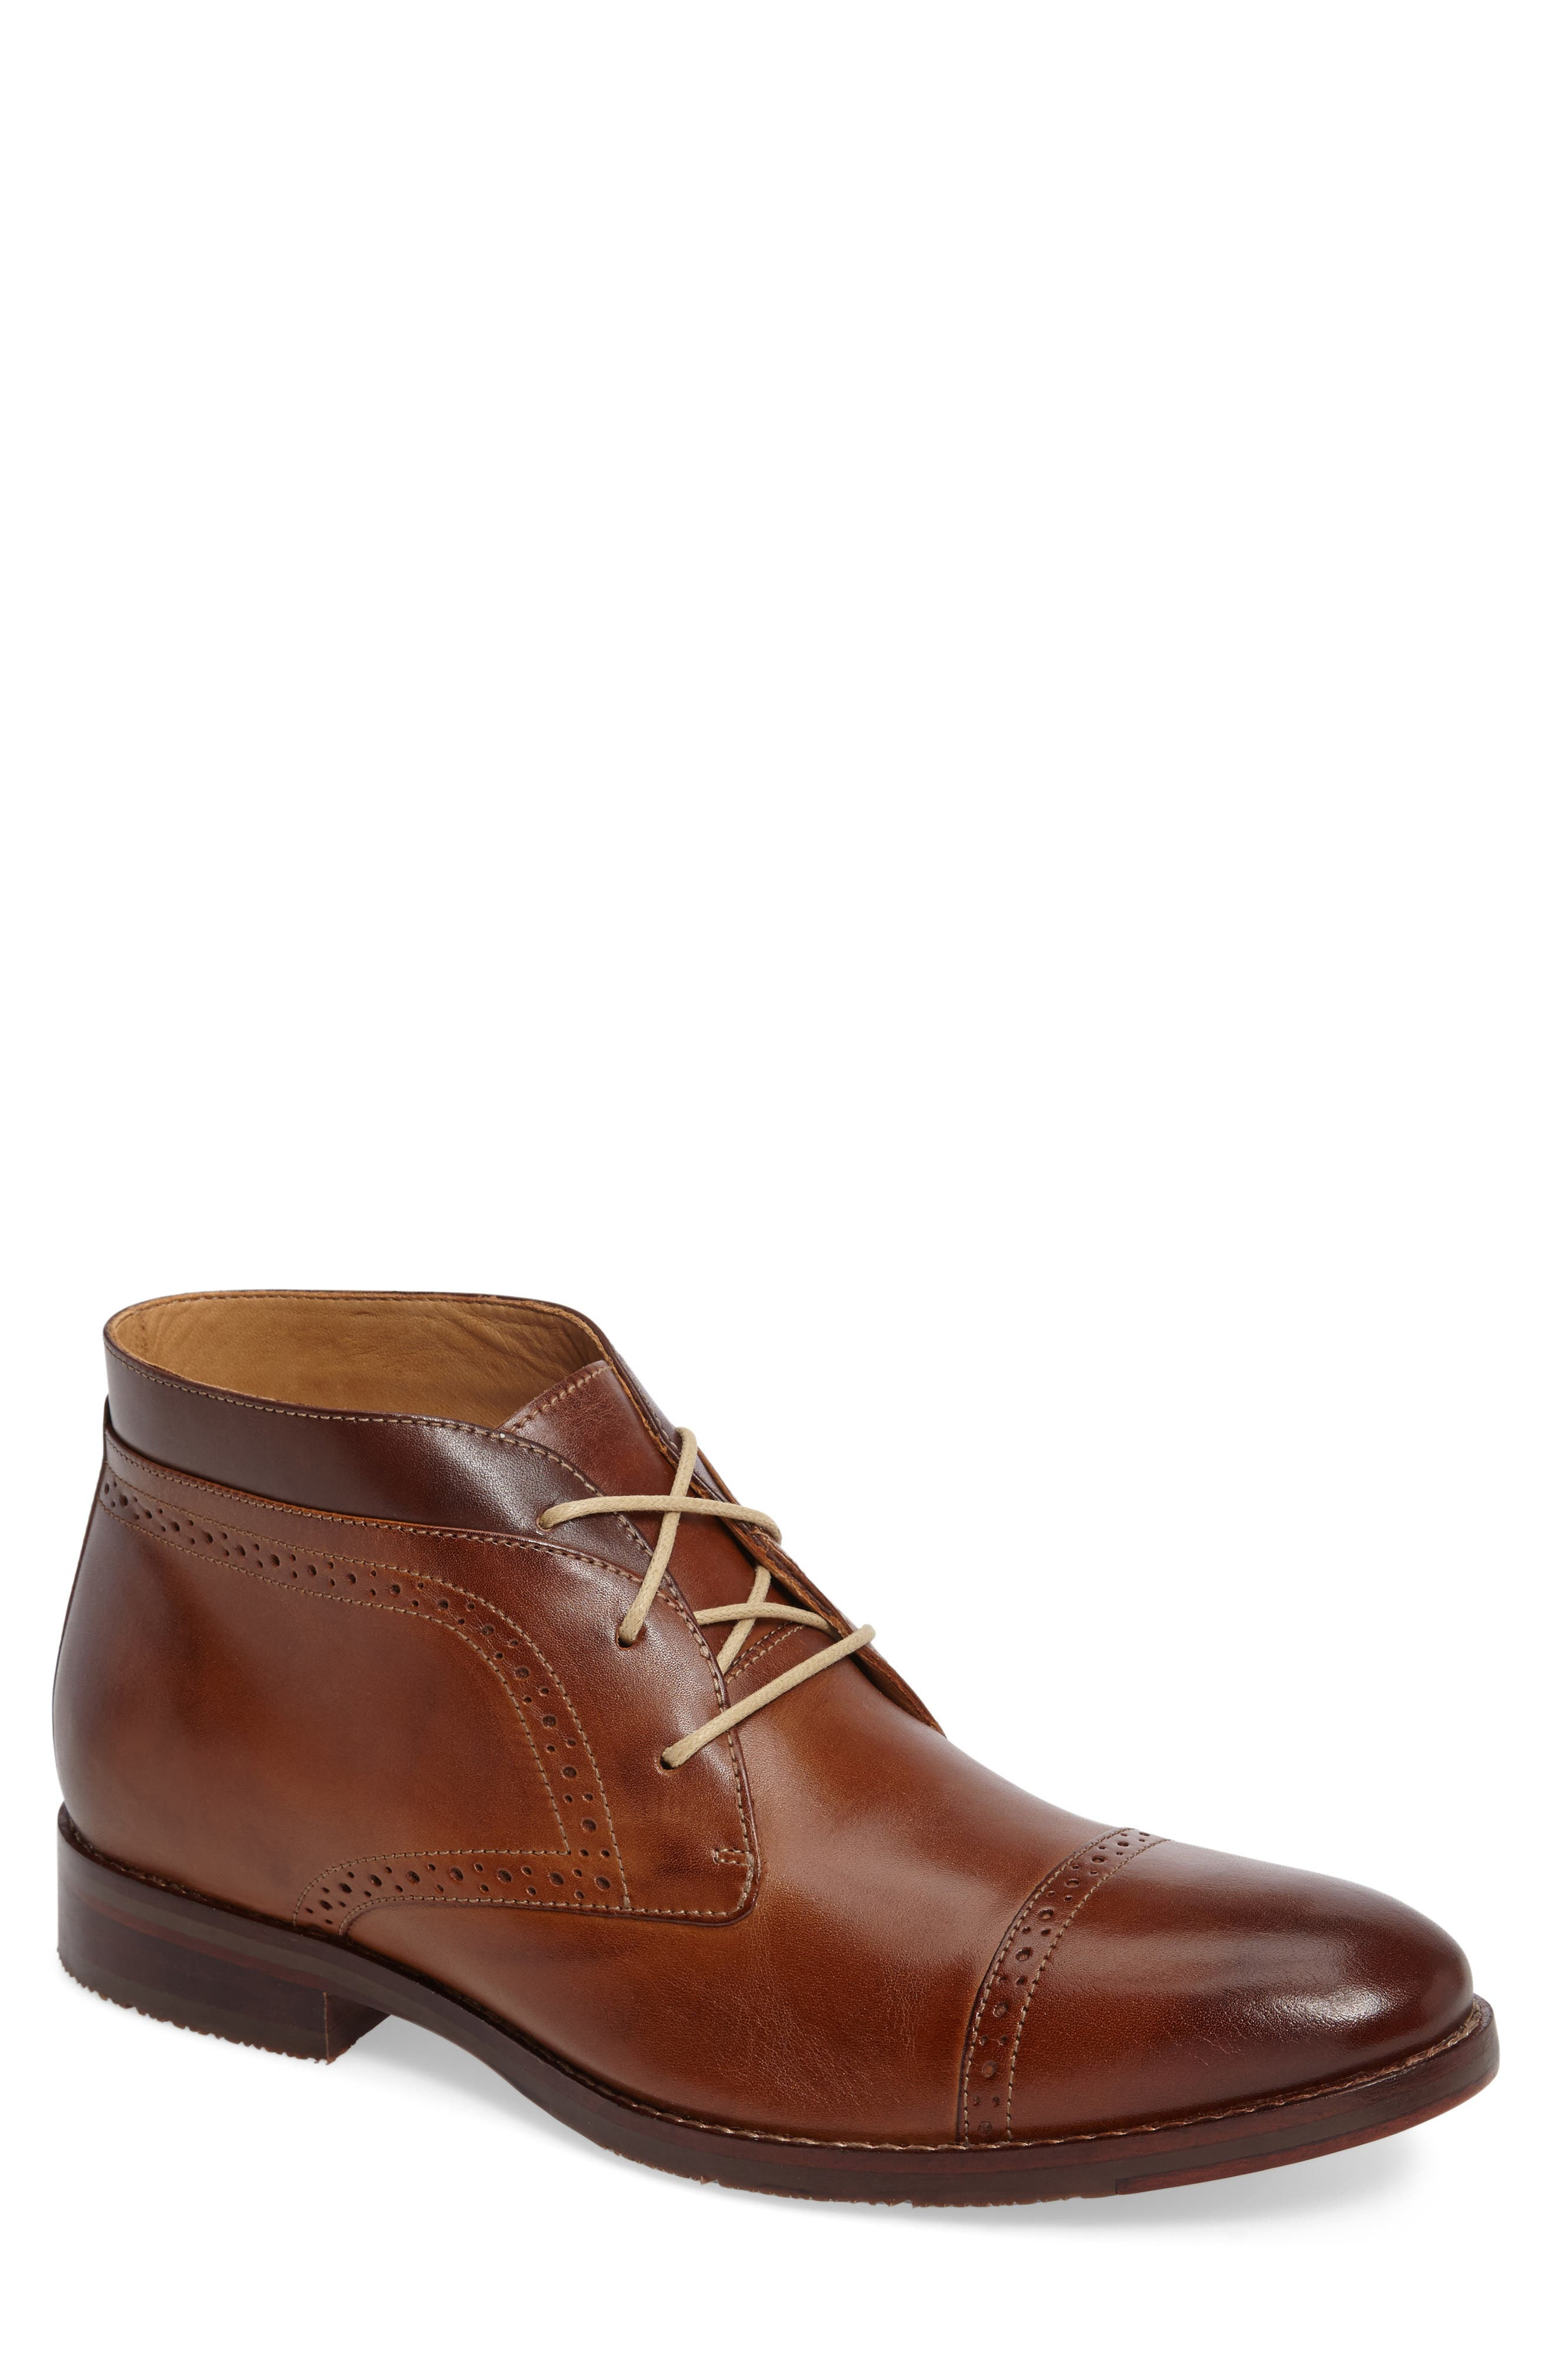 Garner Cap Toe Chukka Boot,                             Main thumbnail 1, color,